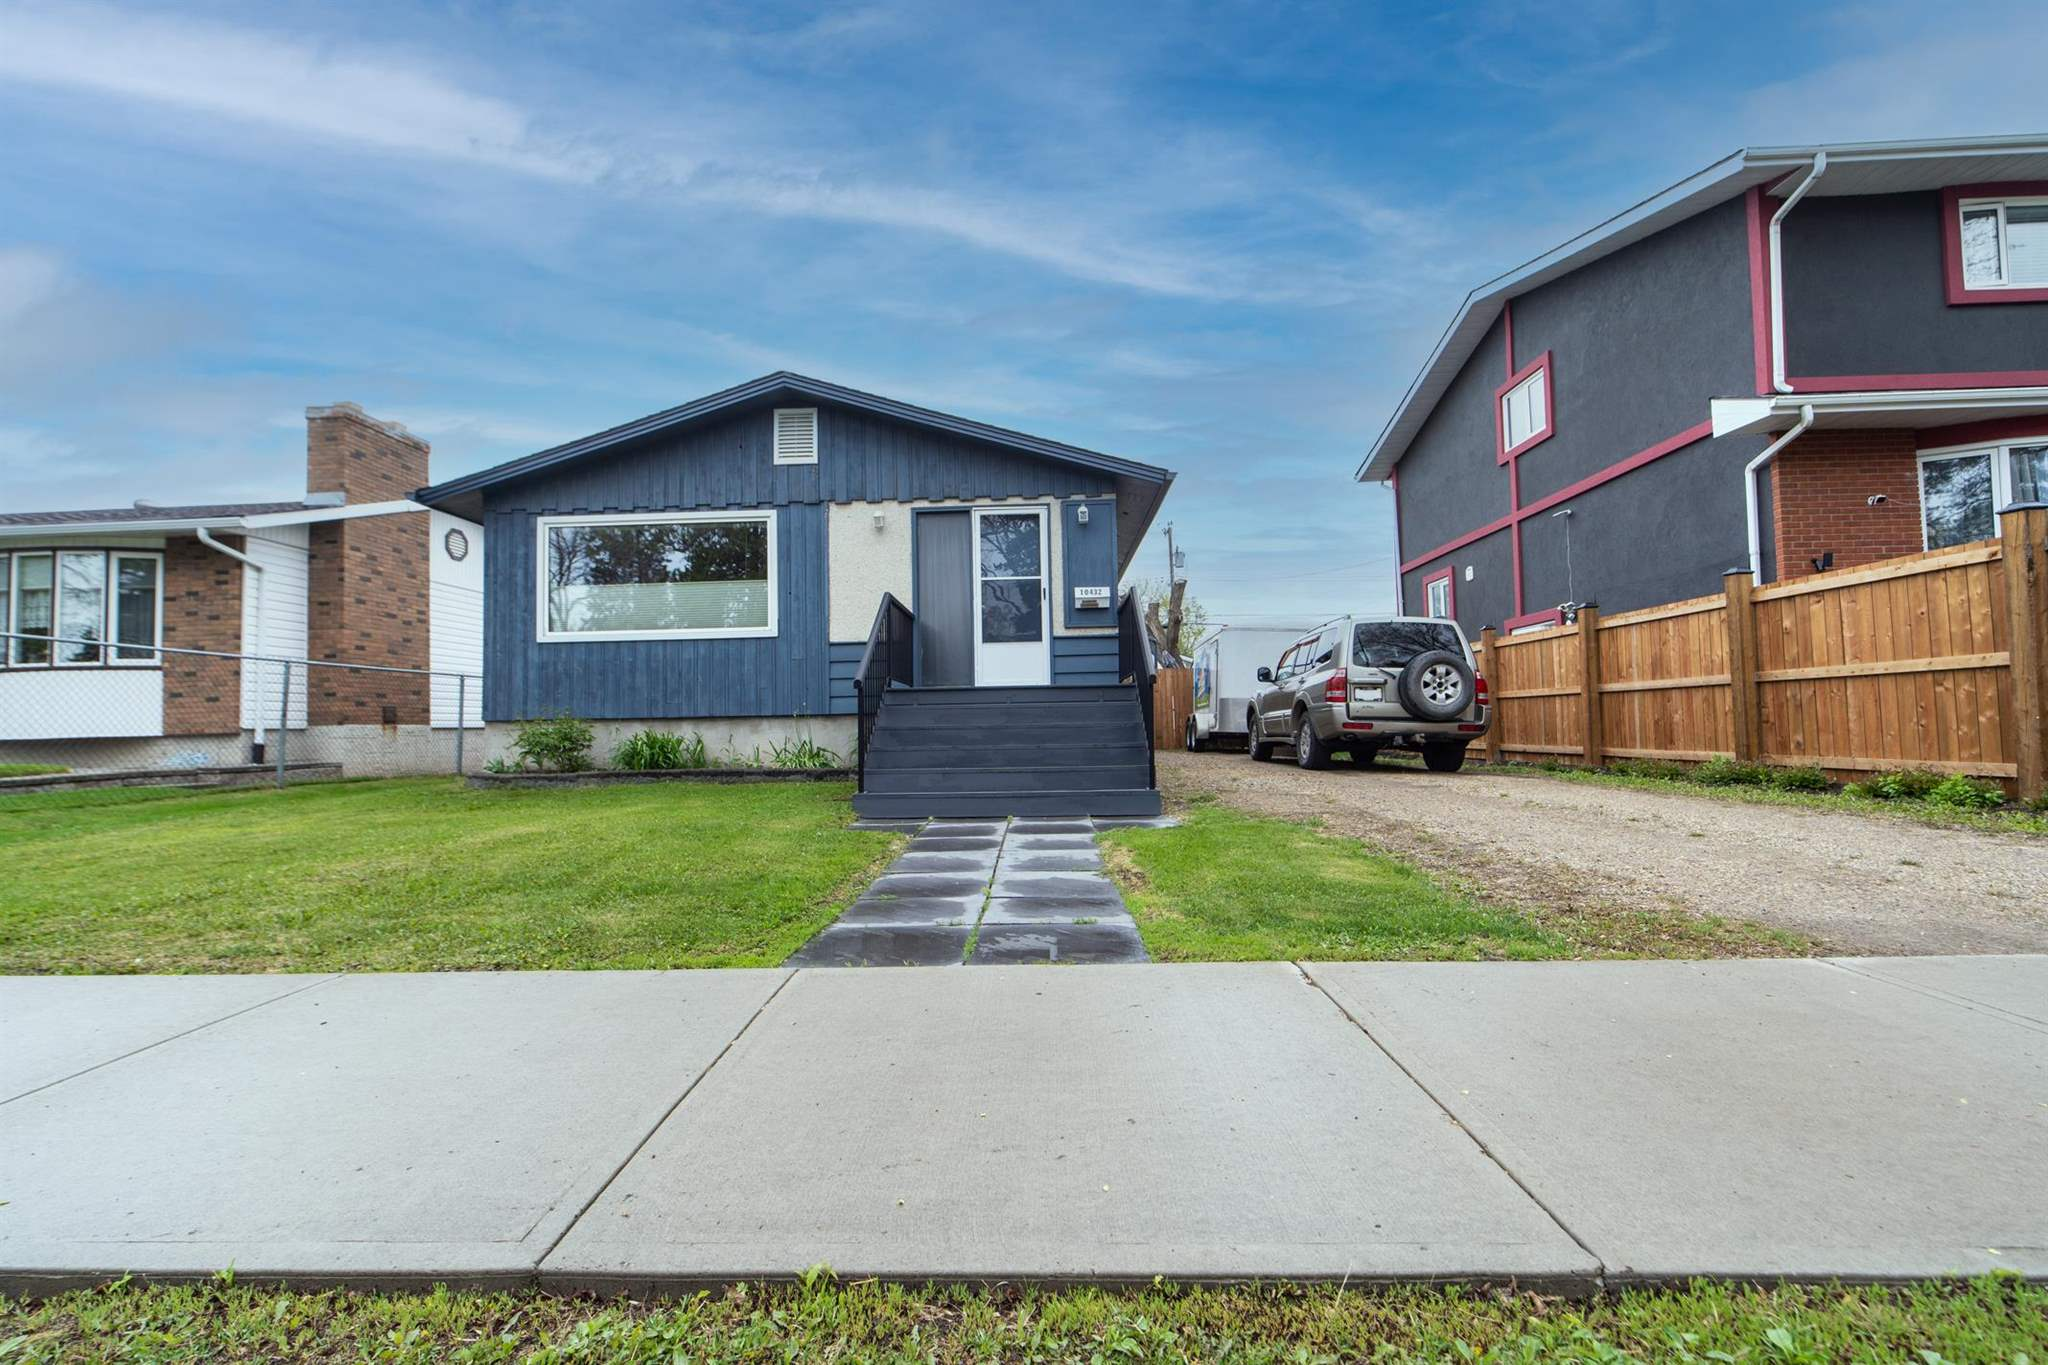 Extensive improvements supported by pride of ownership. This little gem has many great features that make it stand out. The home is nicely appointed and fully developed on both levels. A total of 3 bdrms & 2 full baths. The lower level is cozy and features it's own kitchen, family room, bdrm and 3pc bath. This space is separated from the upper level with it's own door at the base of landing. Flooring is a combination of hardwood & ceramic tile. Major improvements include roofing, some windows, sewer line, sump pump, hot water tank, fencing, concrete floor slab in garage, flooring & both bathrooms. The garage far exceeds that typically seen at this price level. At 24' wide x 26' deep it is oversized and will accommodate pretty much any size passenger vehicle. The interior ceiling height is 10' to underside of trusses; allowing for stacking of some vehicles on car hoists. The large 49.5' x 148' lot is ideal for garden lovers. Community hall across the street has a full size rink and basketball courts.